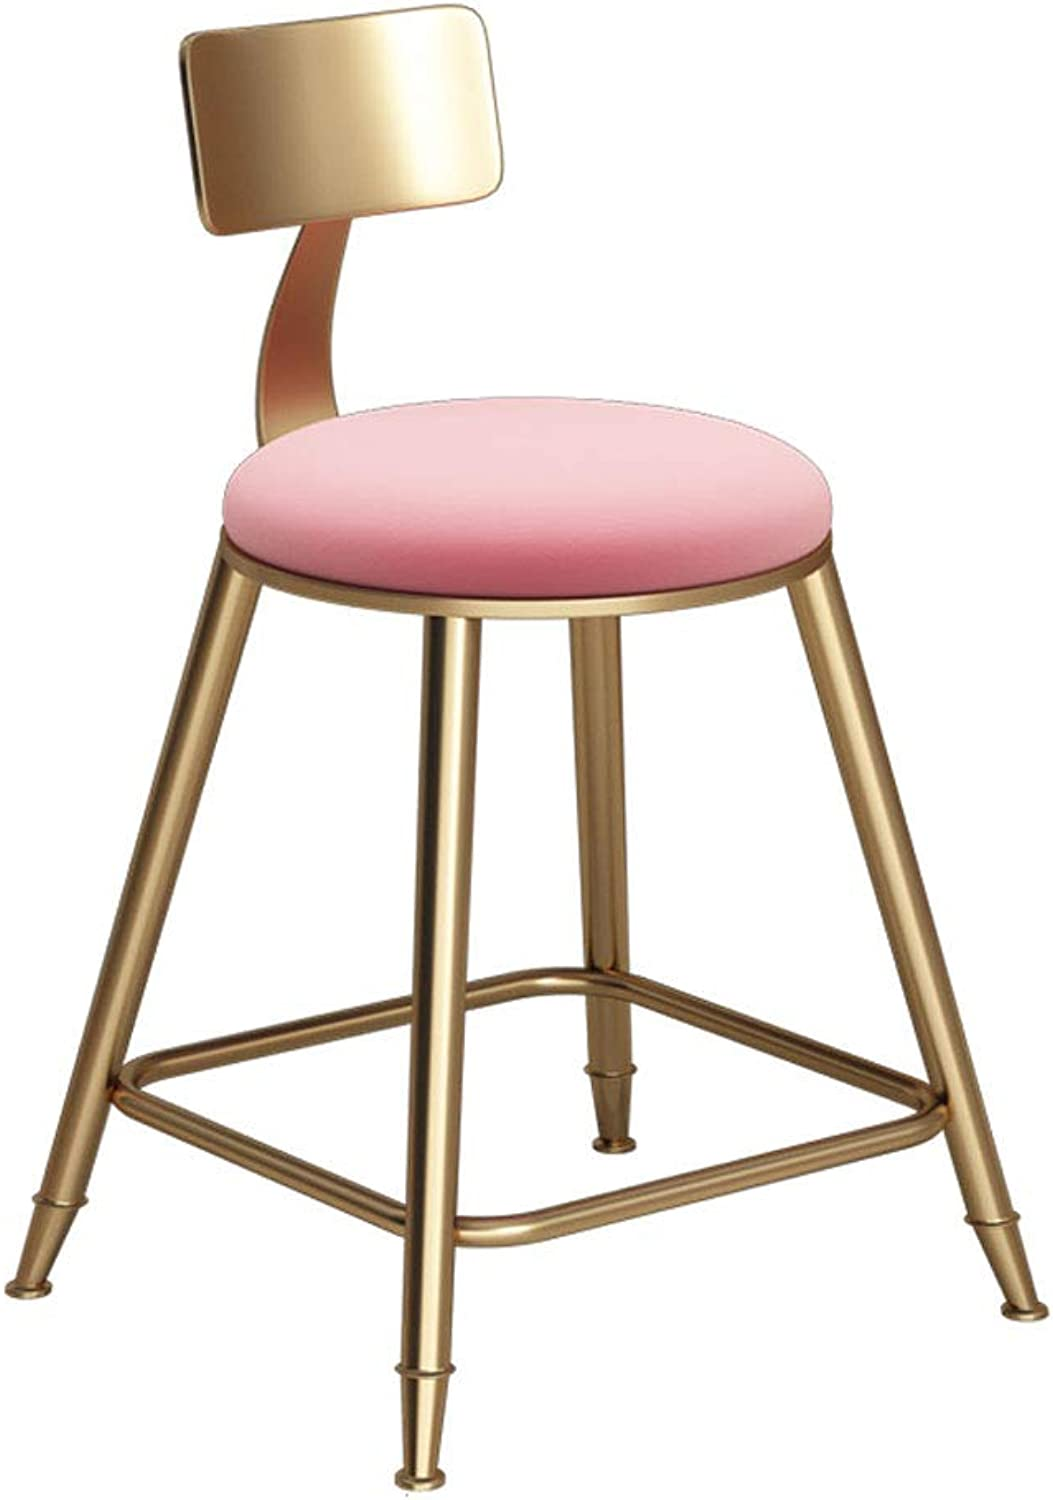 Xiao Mi Guo Ji- Chair Foot Pad Sponge Cushion Backrest Dining Chair Kitchen Bar Stool Metal Legs Load 150 Kg Bar Stool (color   Pink, Size   45CM)